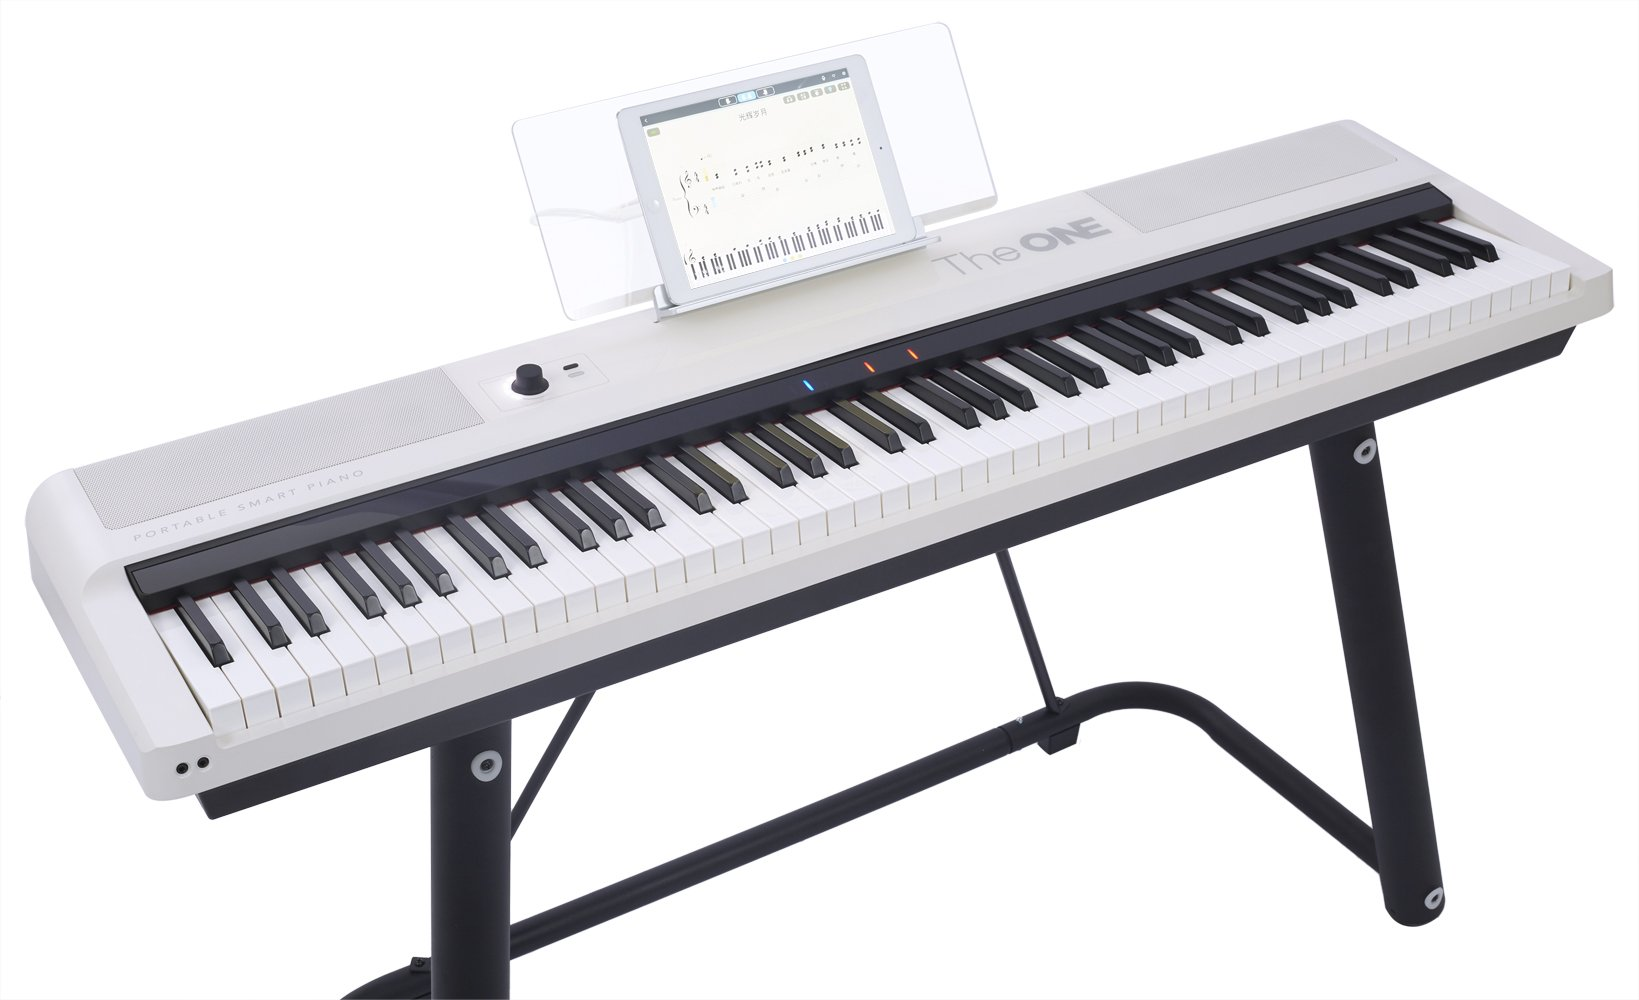 The ONE Smart Keyboard Pro, 88-Key Digital Piano Keyboard, Portable Digital Piano, Weighted Action Keys, White by The ONE Music Group (Image #6)